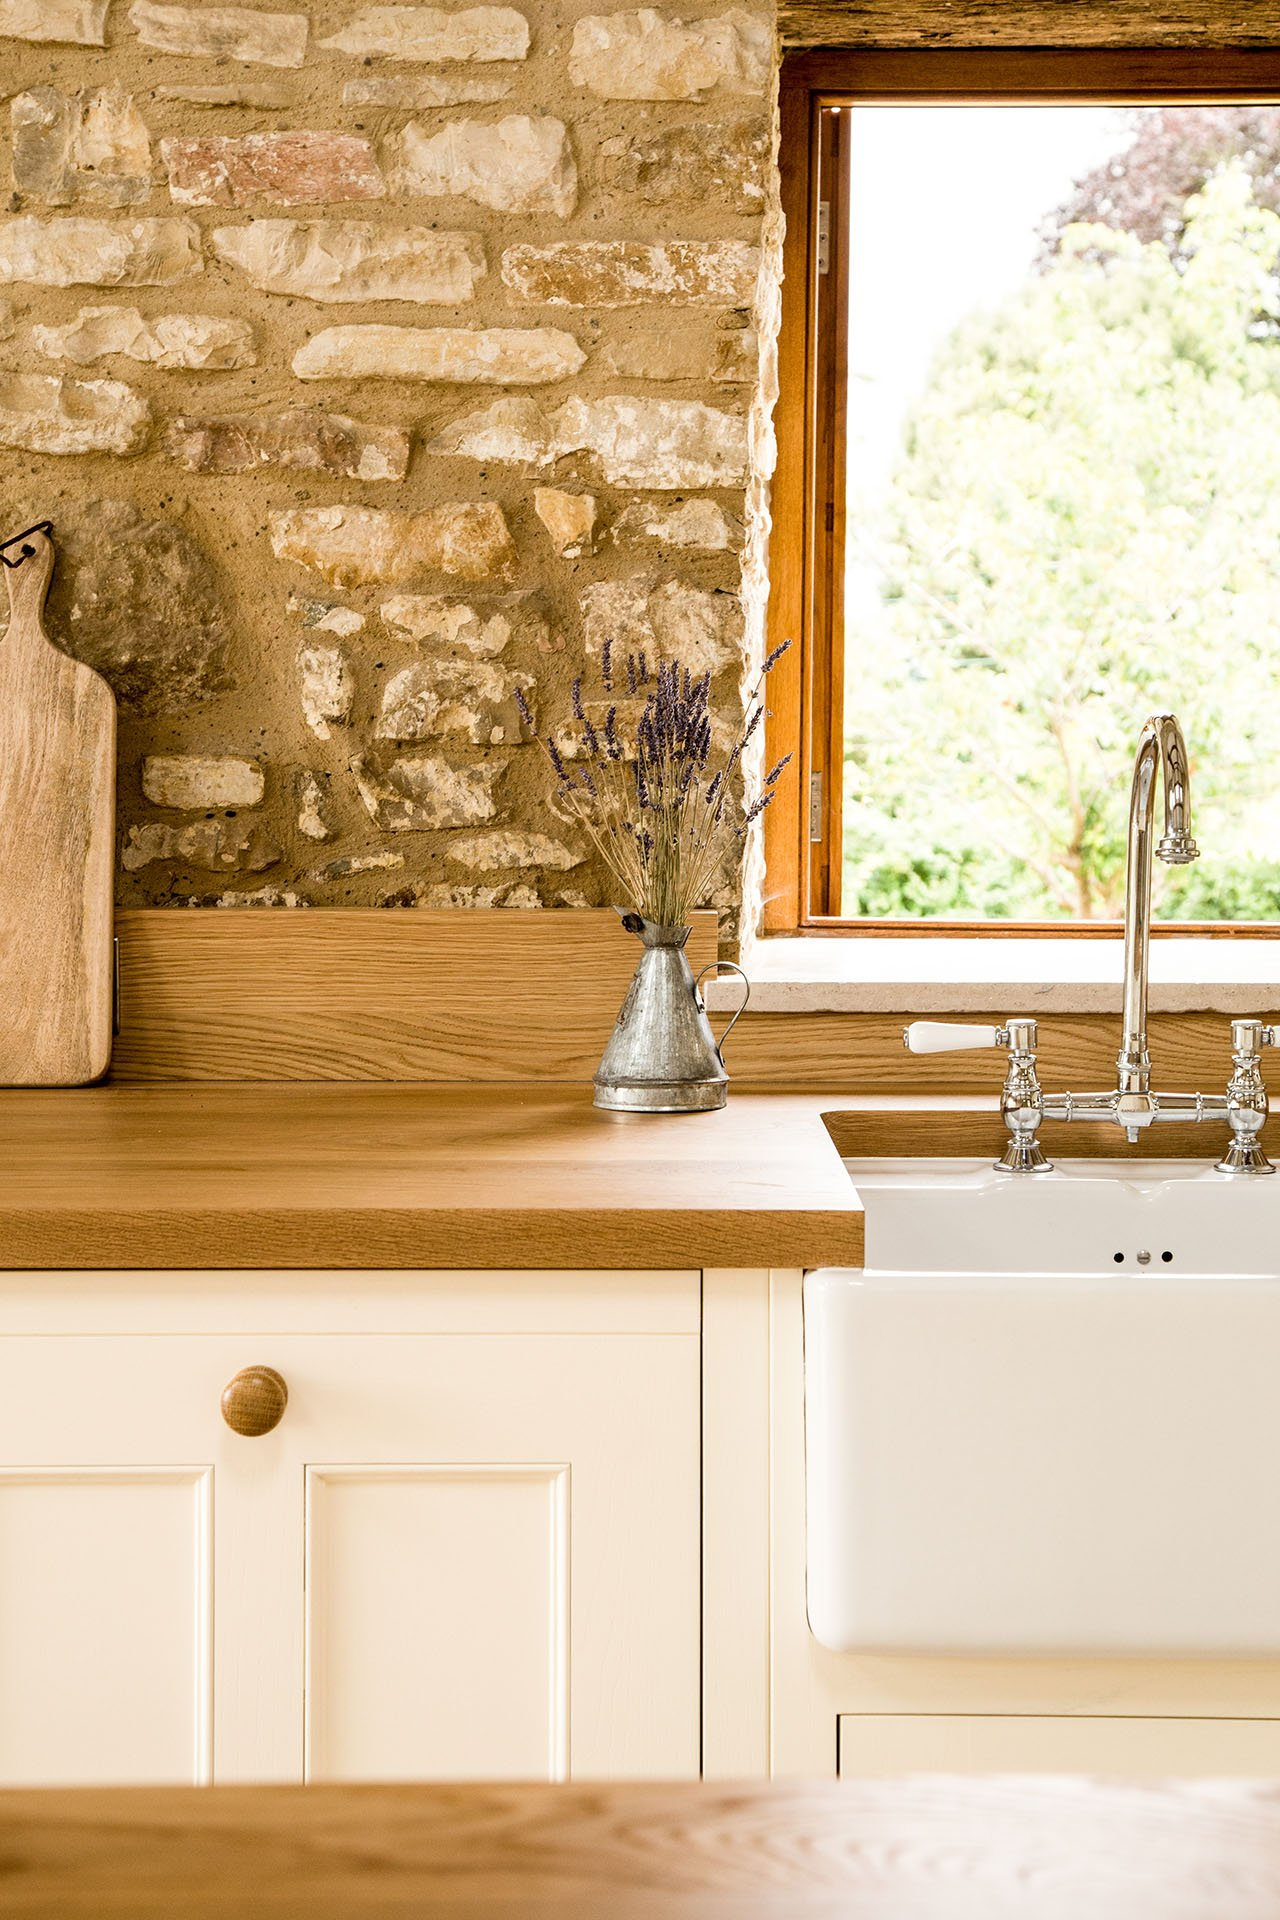 Traditional Country Kitchen with Oak worktop and white painted cabinets with moulded panels